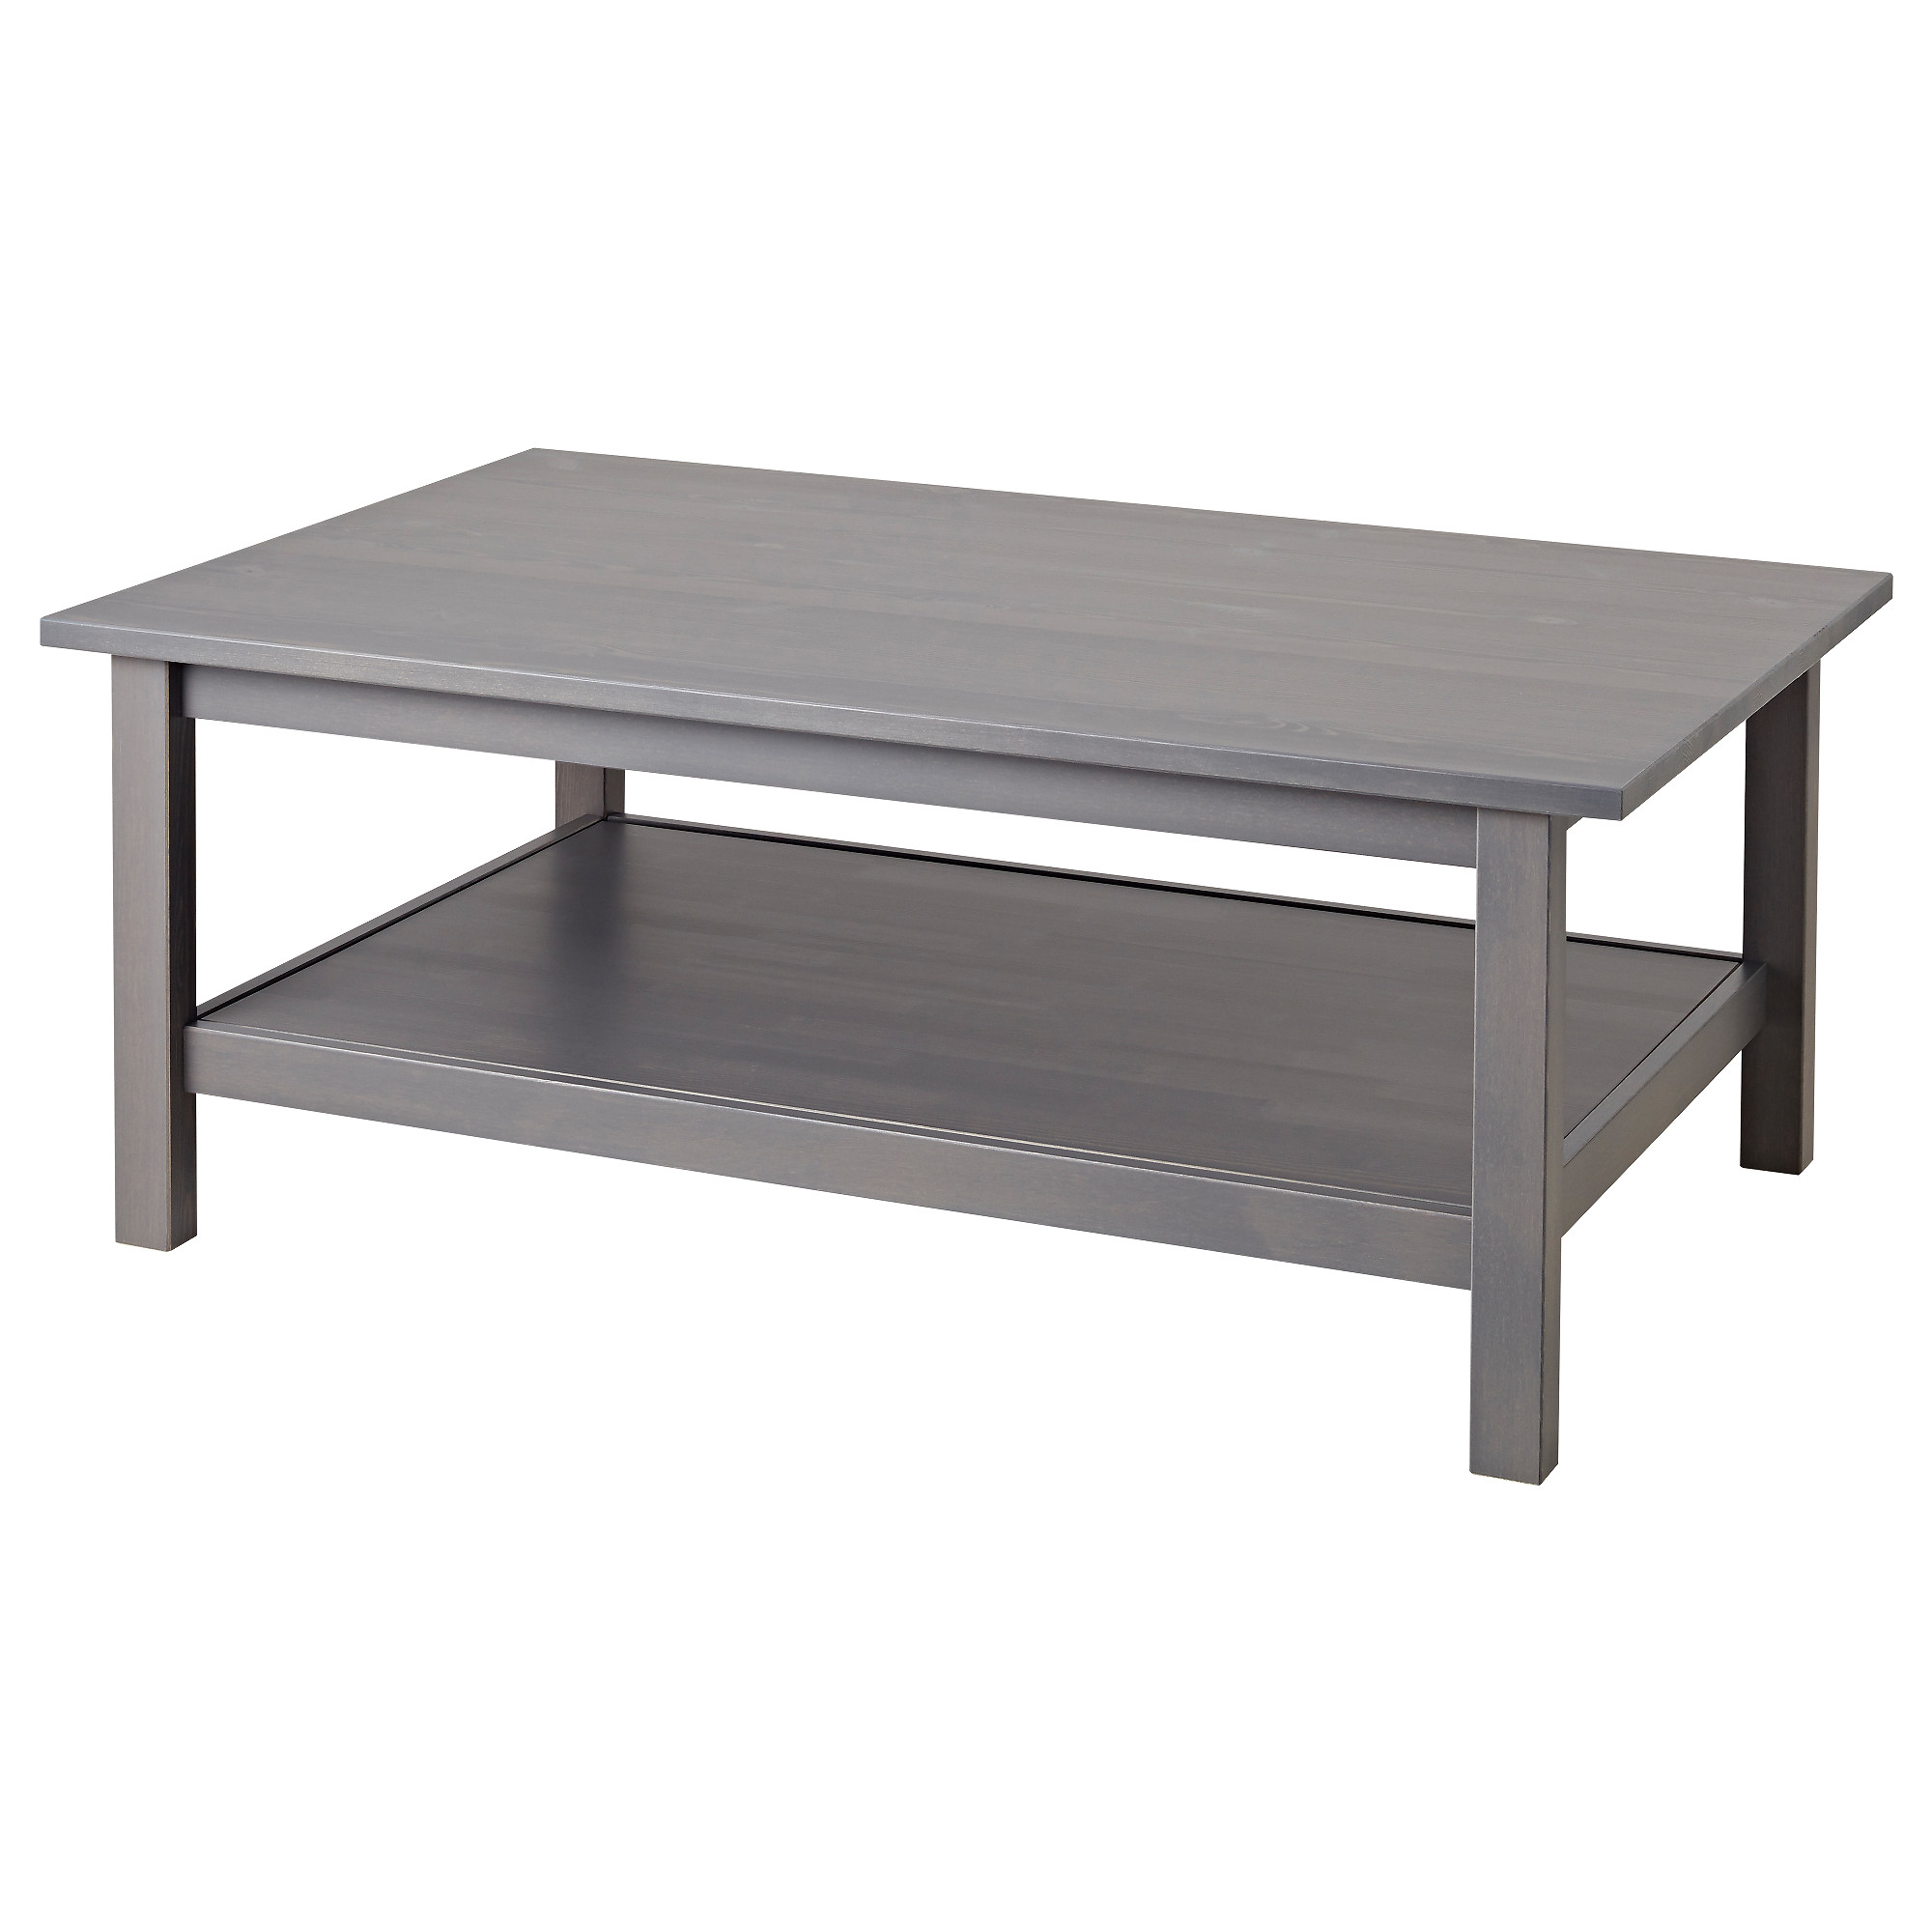 Coffee tables console tables ikea hemnes coffee table dark gray gray stained length 46 12 width geotapseo Image collections